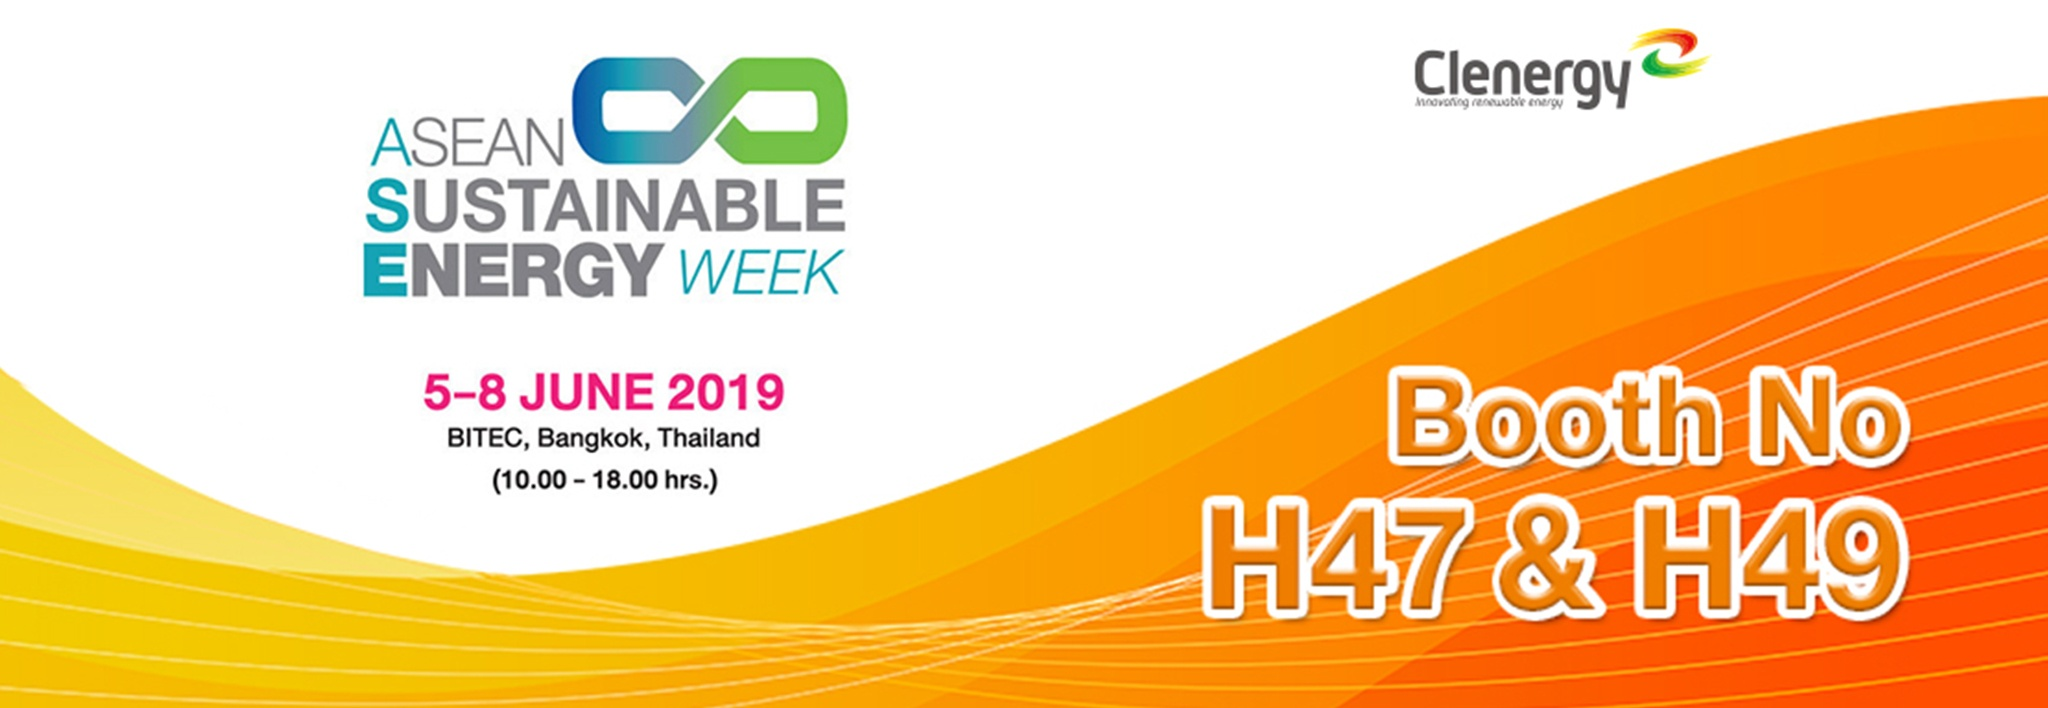 Clenergy at ASEAN Sustainable Energy Week 2019 Invitation Letter